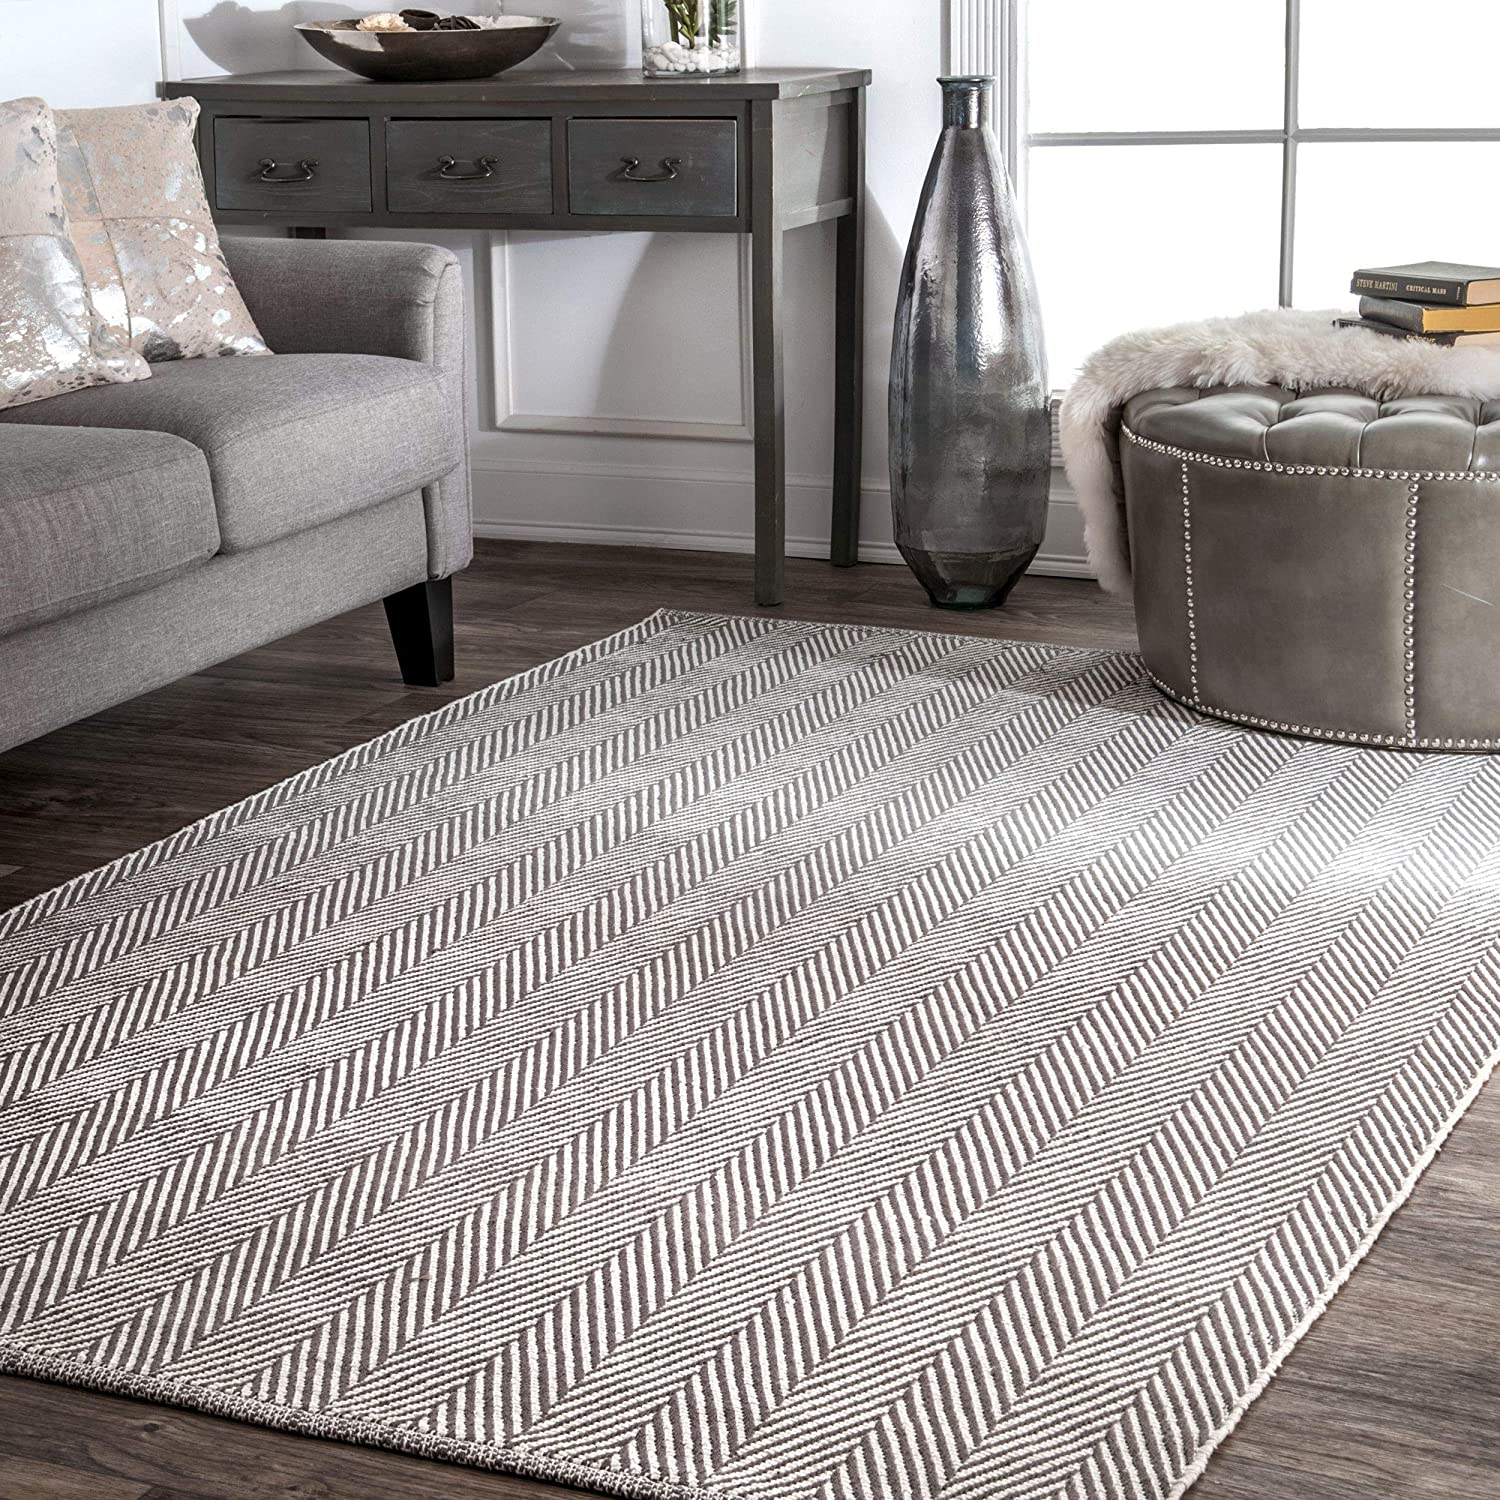 Amazon Com Nuloom Kimberely Hand Loomed Area Rug 9 X 12 Grey Home Kitchen